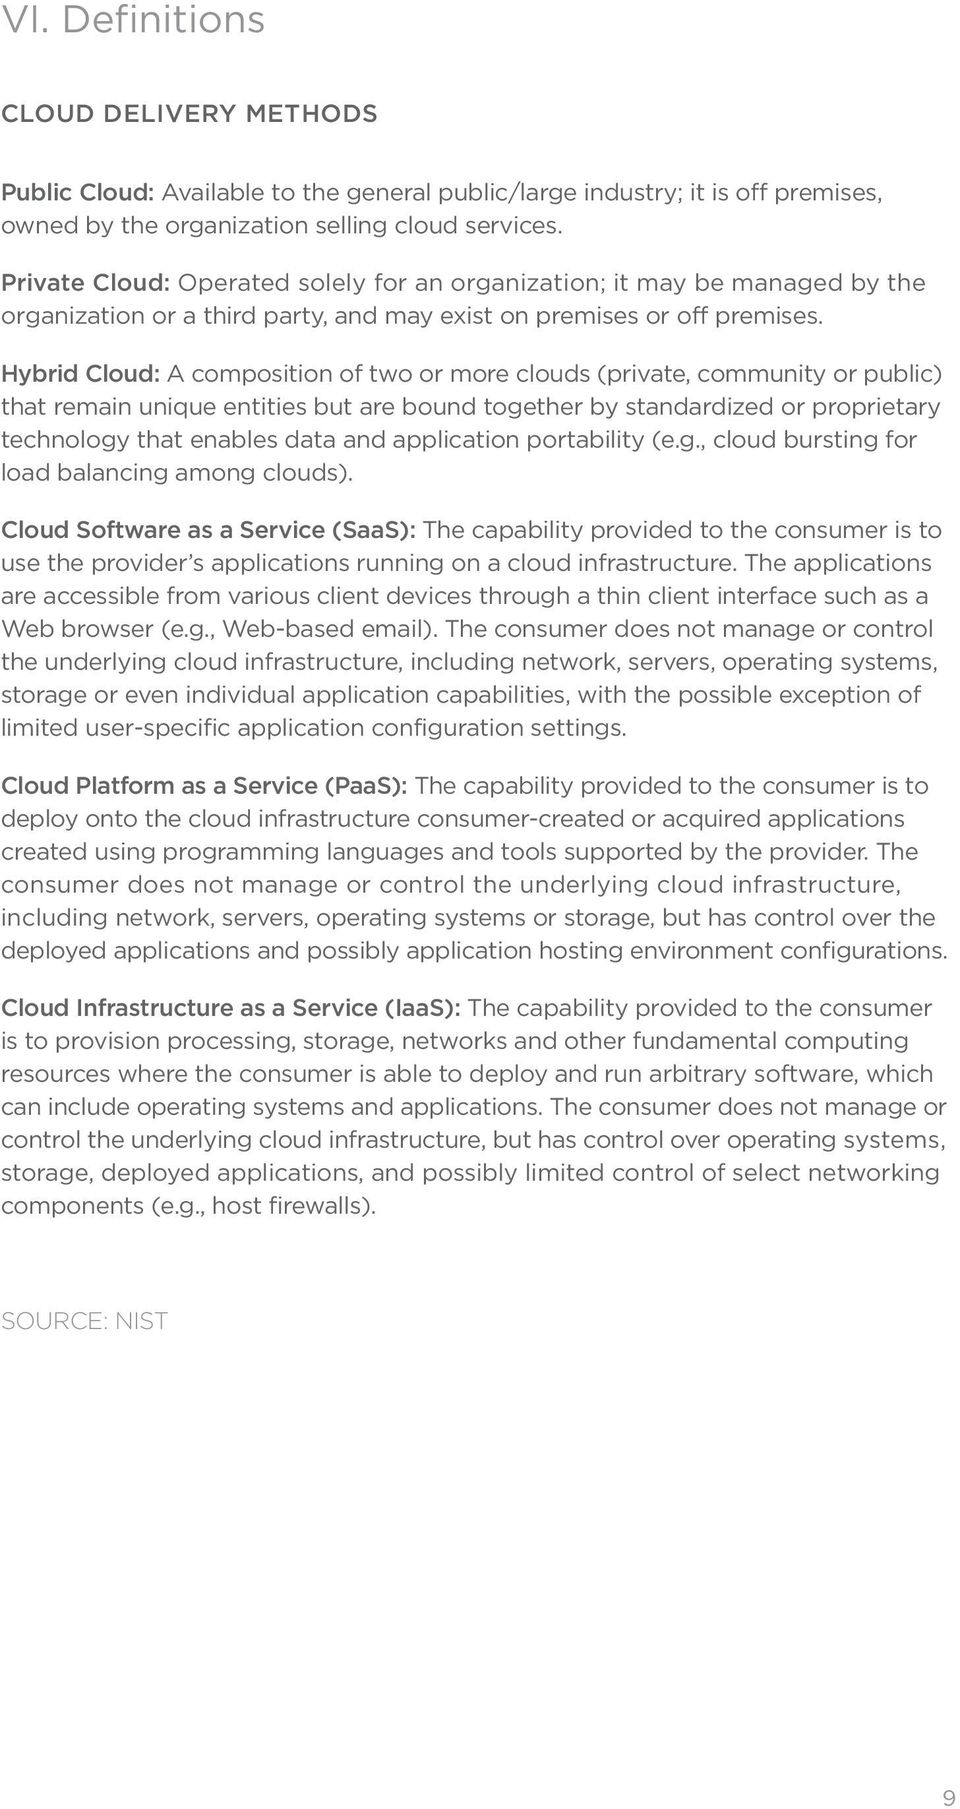 Hybrid Cloud: A composition of two or more clouds (private, community or public) that remain unique entities but are bound together by standardized or proprietary technology that enables data and